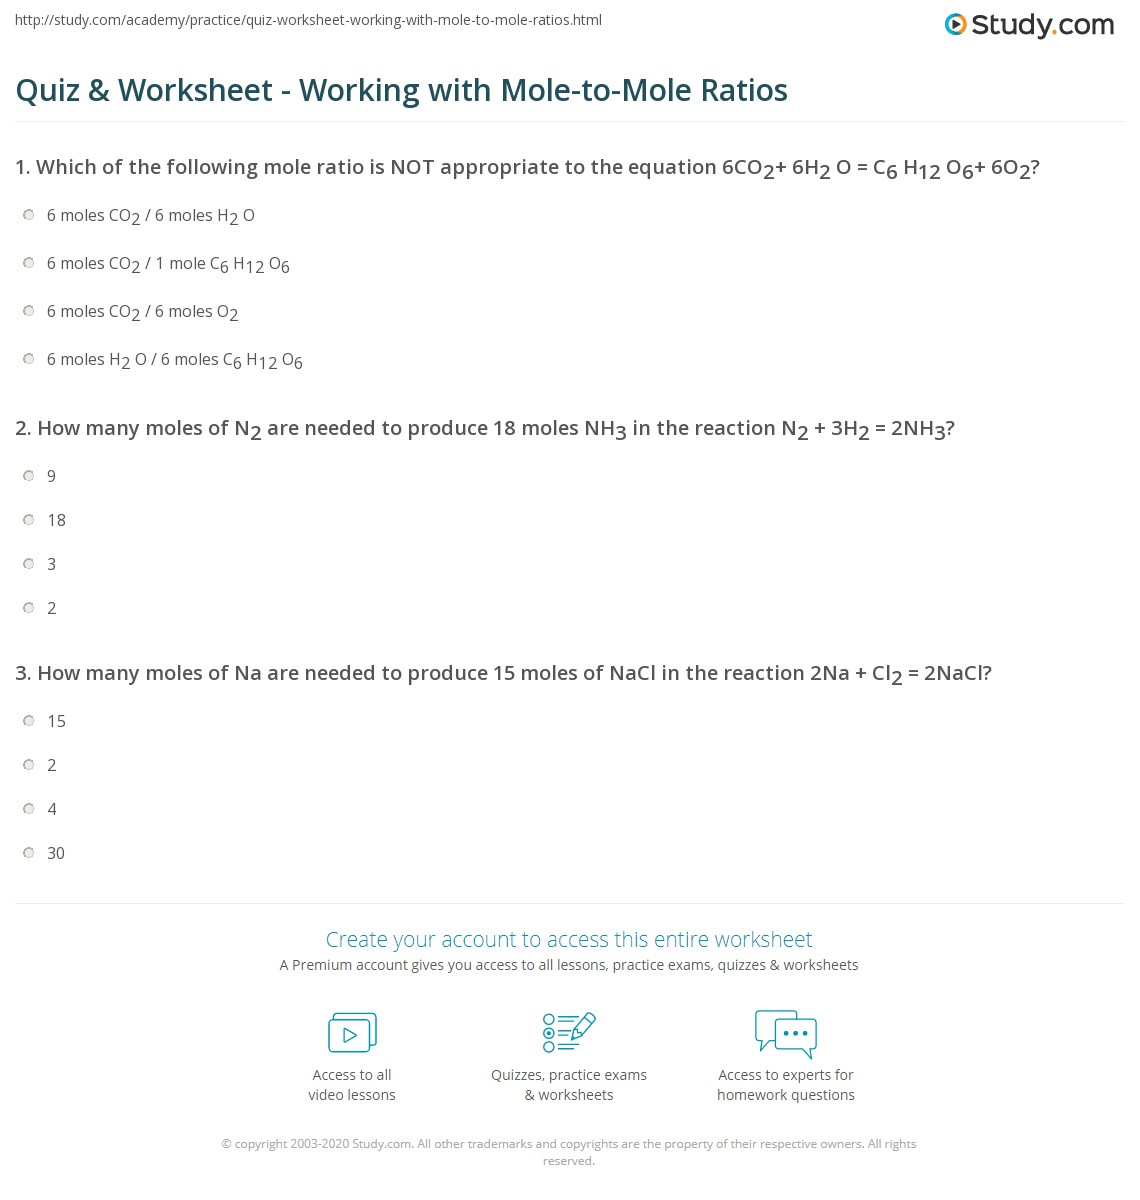 Printables Mole Ratio Worksheet quiz worksheet working with mole to ratios study com print and calculations of a chemical equation worksheet